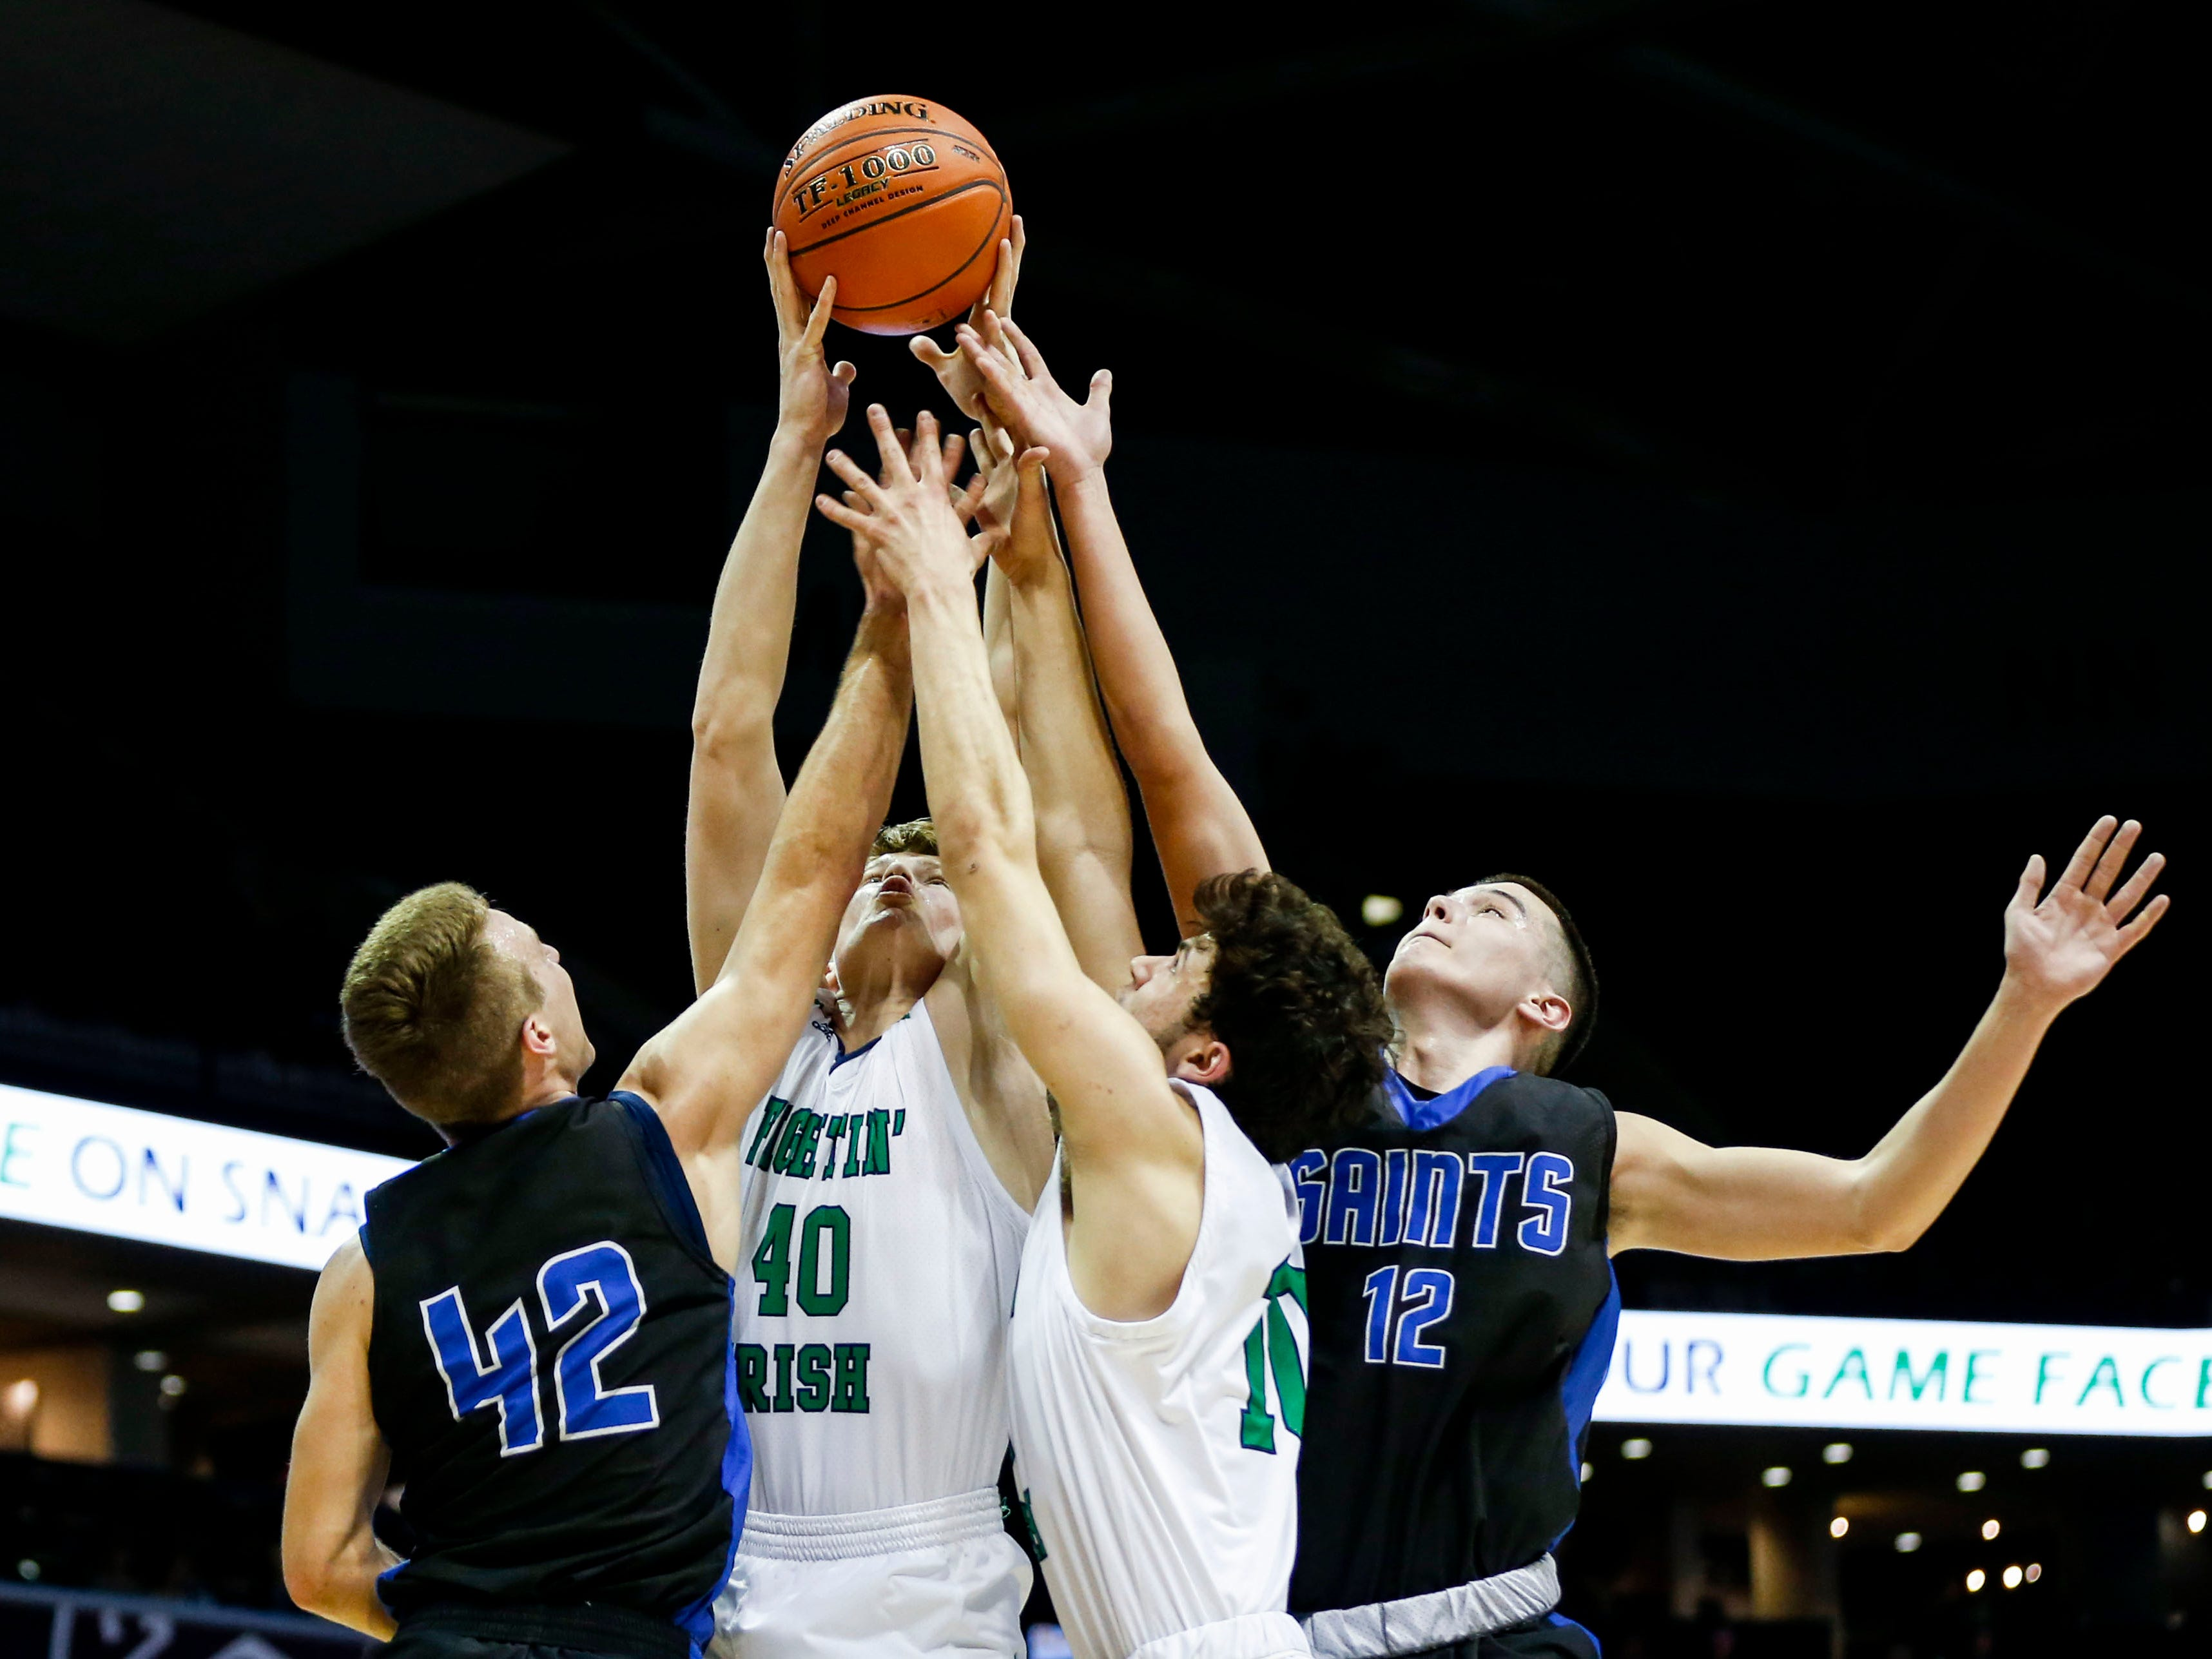 Springfield Catholic's Will Morrison gets his hands on a rebound as the Fightin' Irish take on the St. Paul Lutheran Saints in semifinal round of Class 3 state basketball at JQH Arena on Thursday, March 7, 2019.